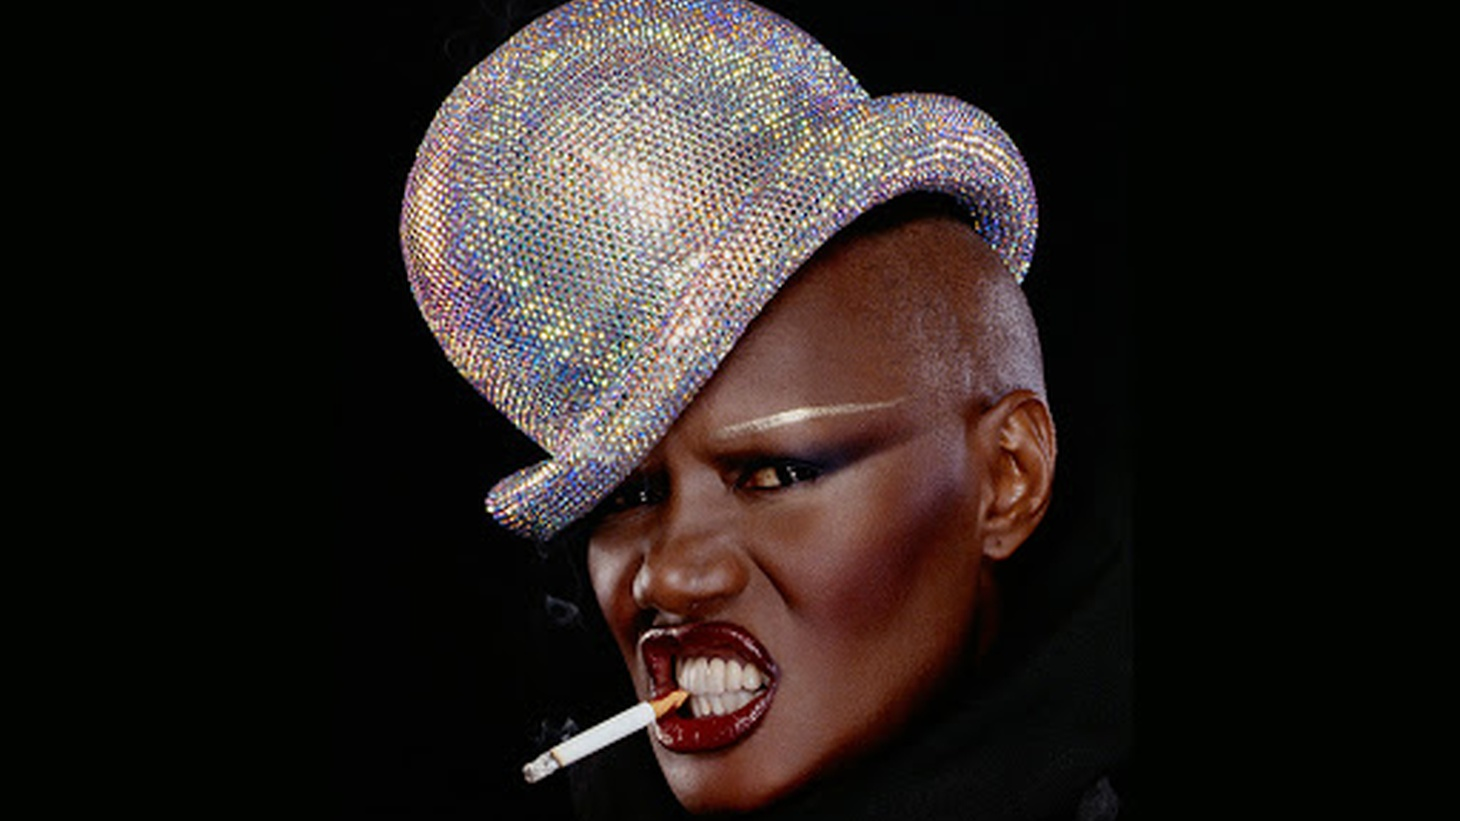 A new documentary looks at the life of Grace Jones, who had a strict pentecostal upbringing in Jamaica, but rejected it to become a pop star. The film includes footage from her concerts and intimate scenes with her family.